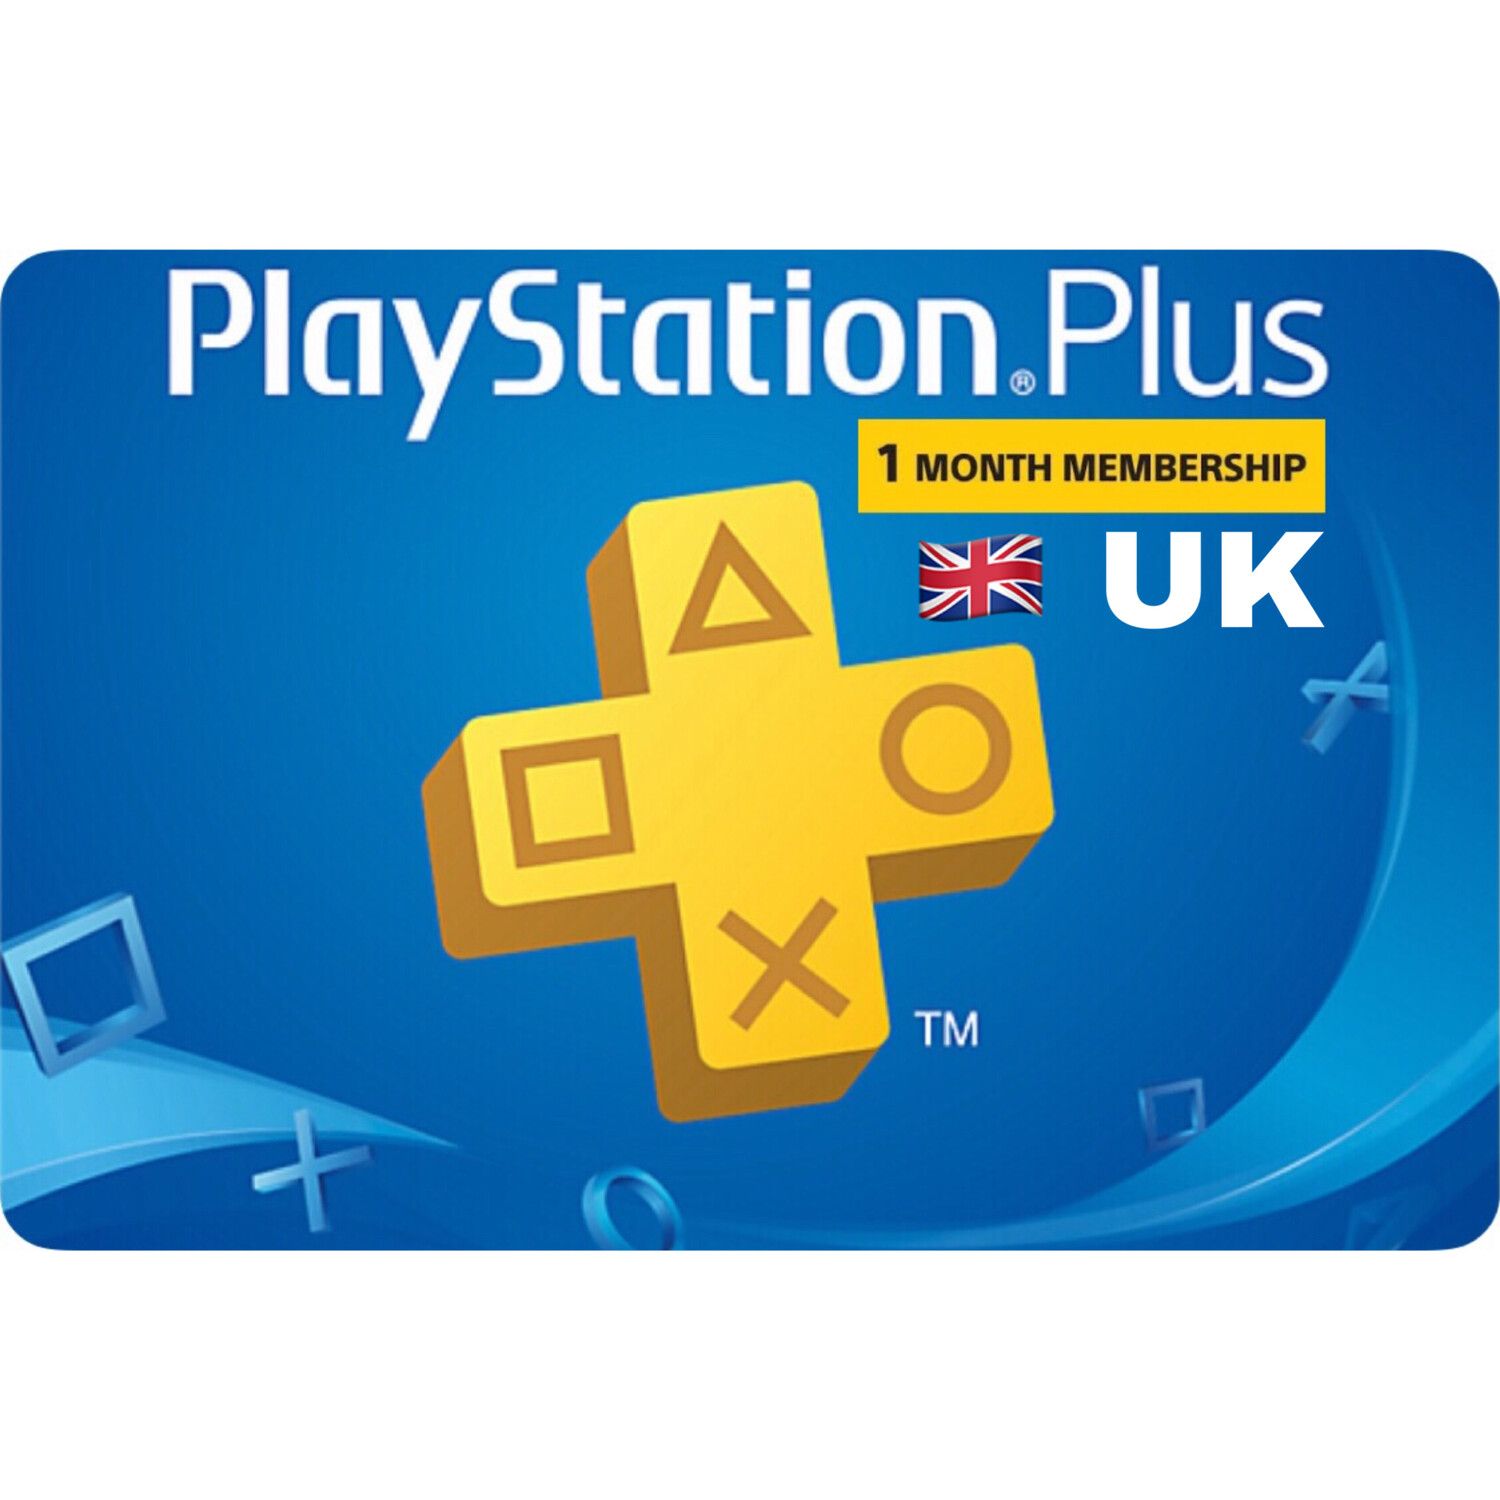 Playstation Plus (PSN Plus) UK 1 Month